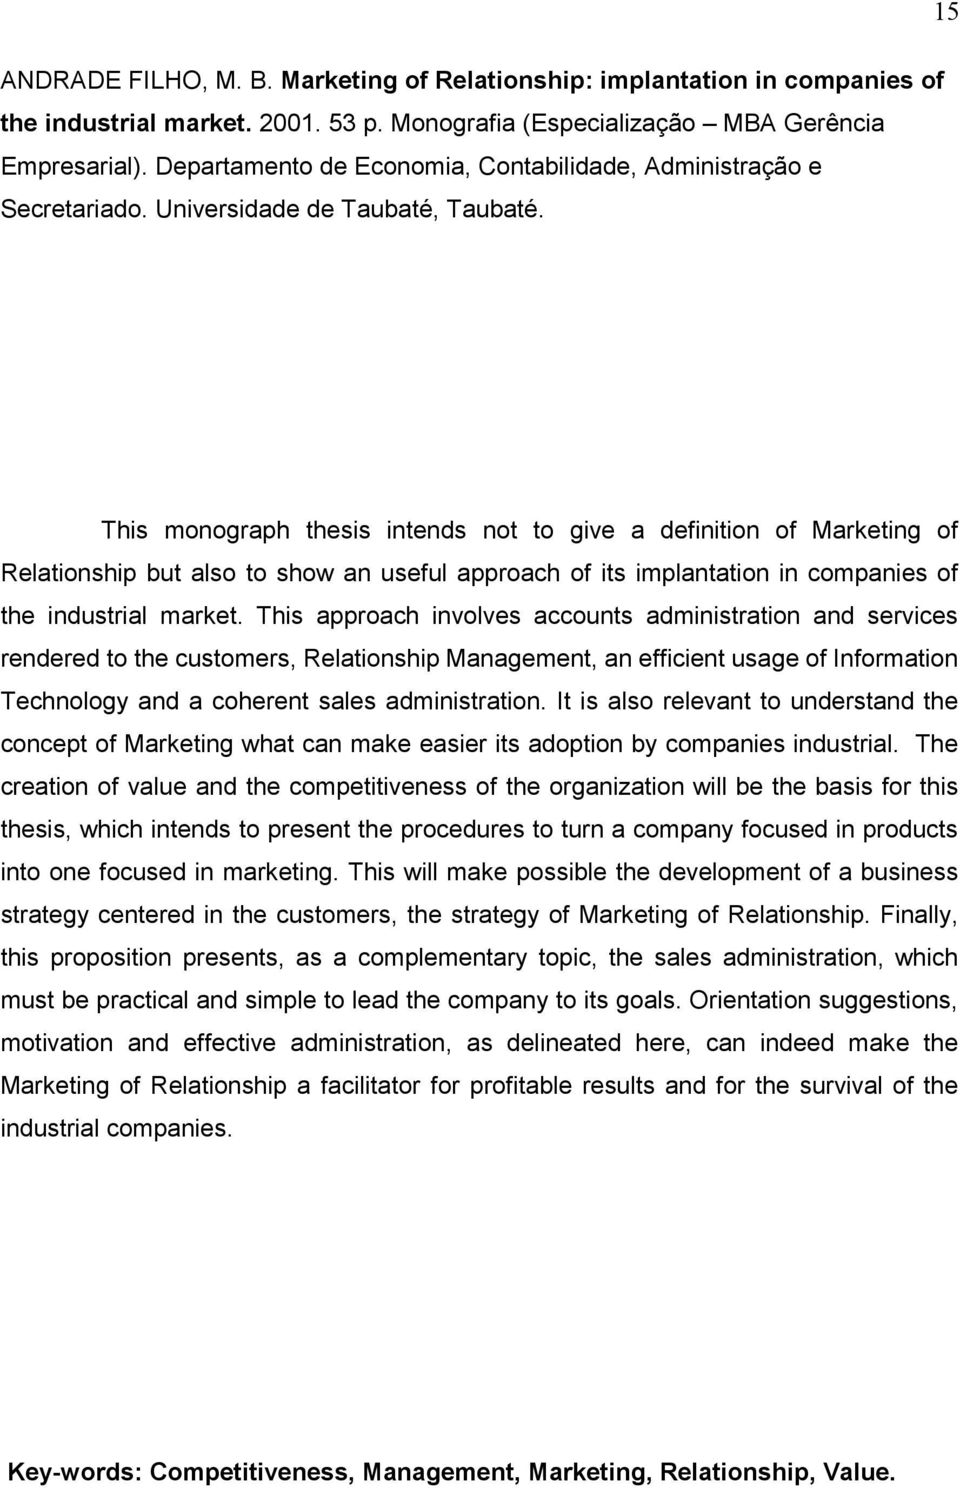 This monograph thesis intends not to give a definition of Marketing of Relationship but also to show an useful approach of its implantation in companies of the industrial market.